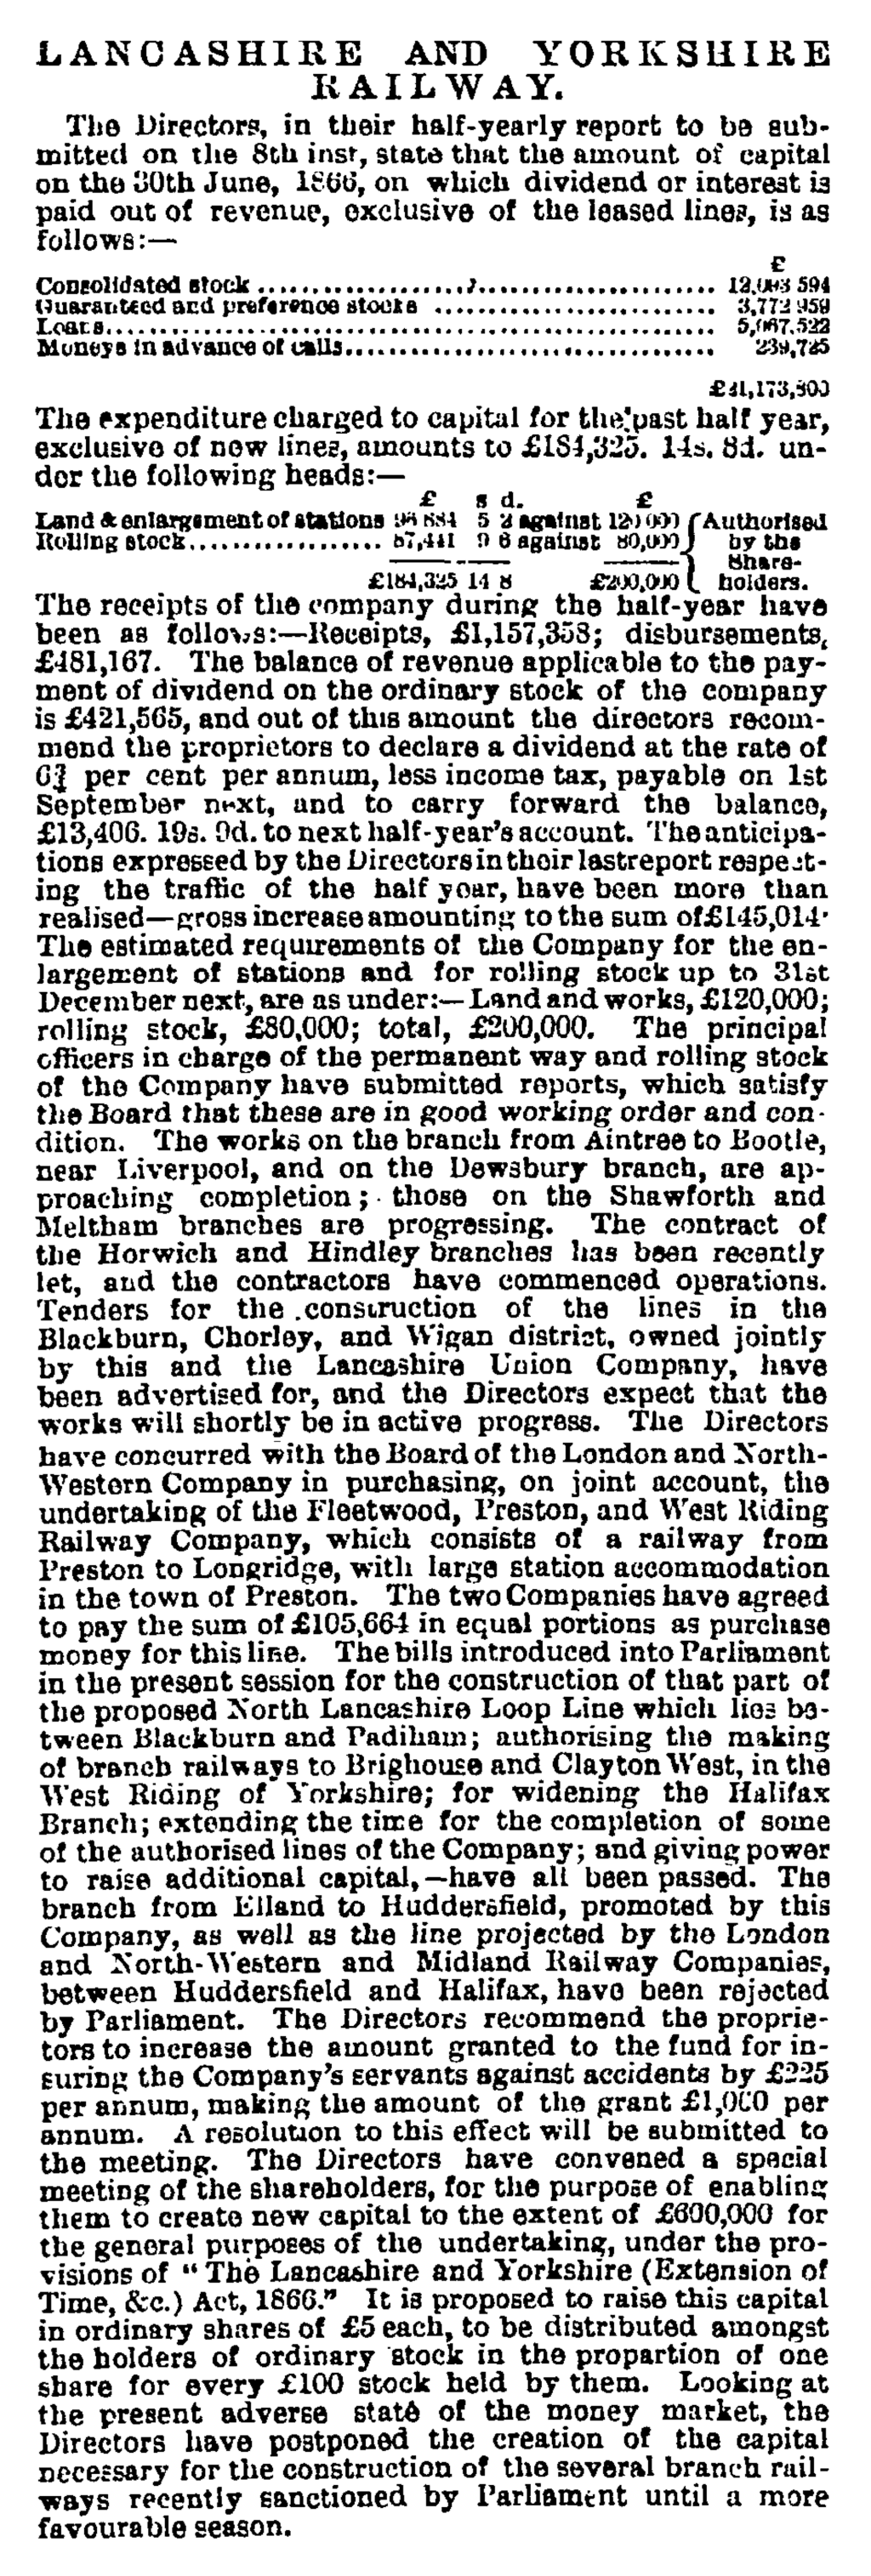 Lancashire and Yorkshire Railway - Manchester Guardian (1828-1900) 02 Aug 1866